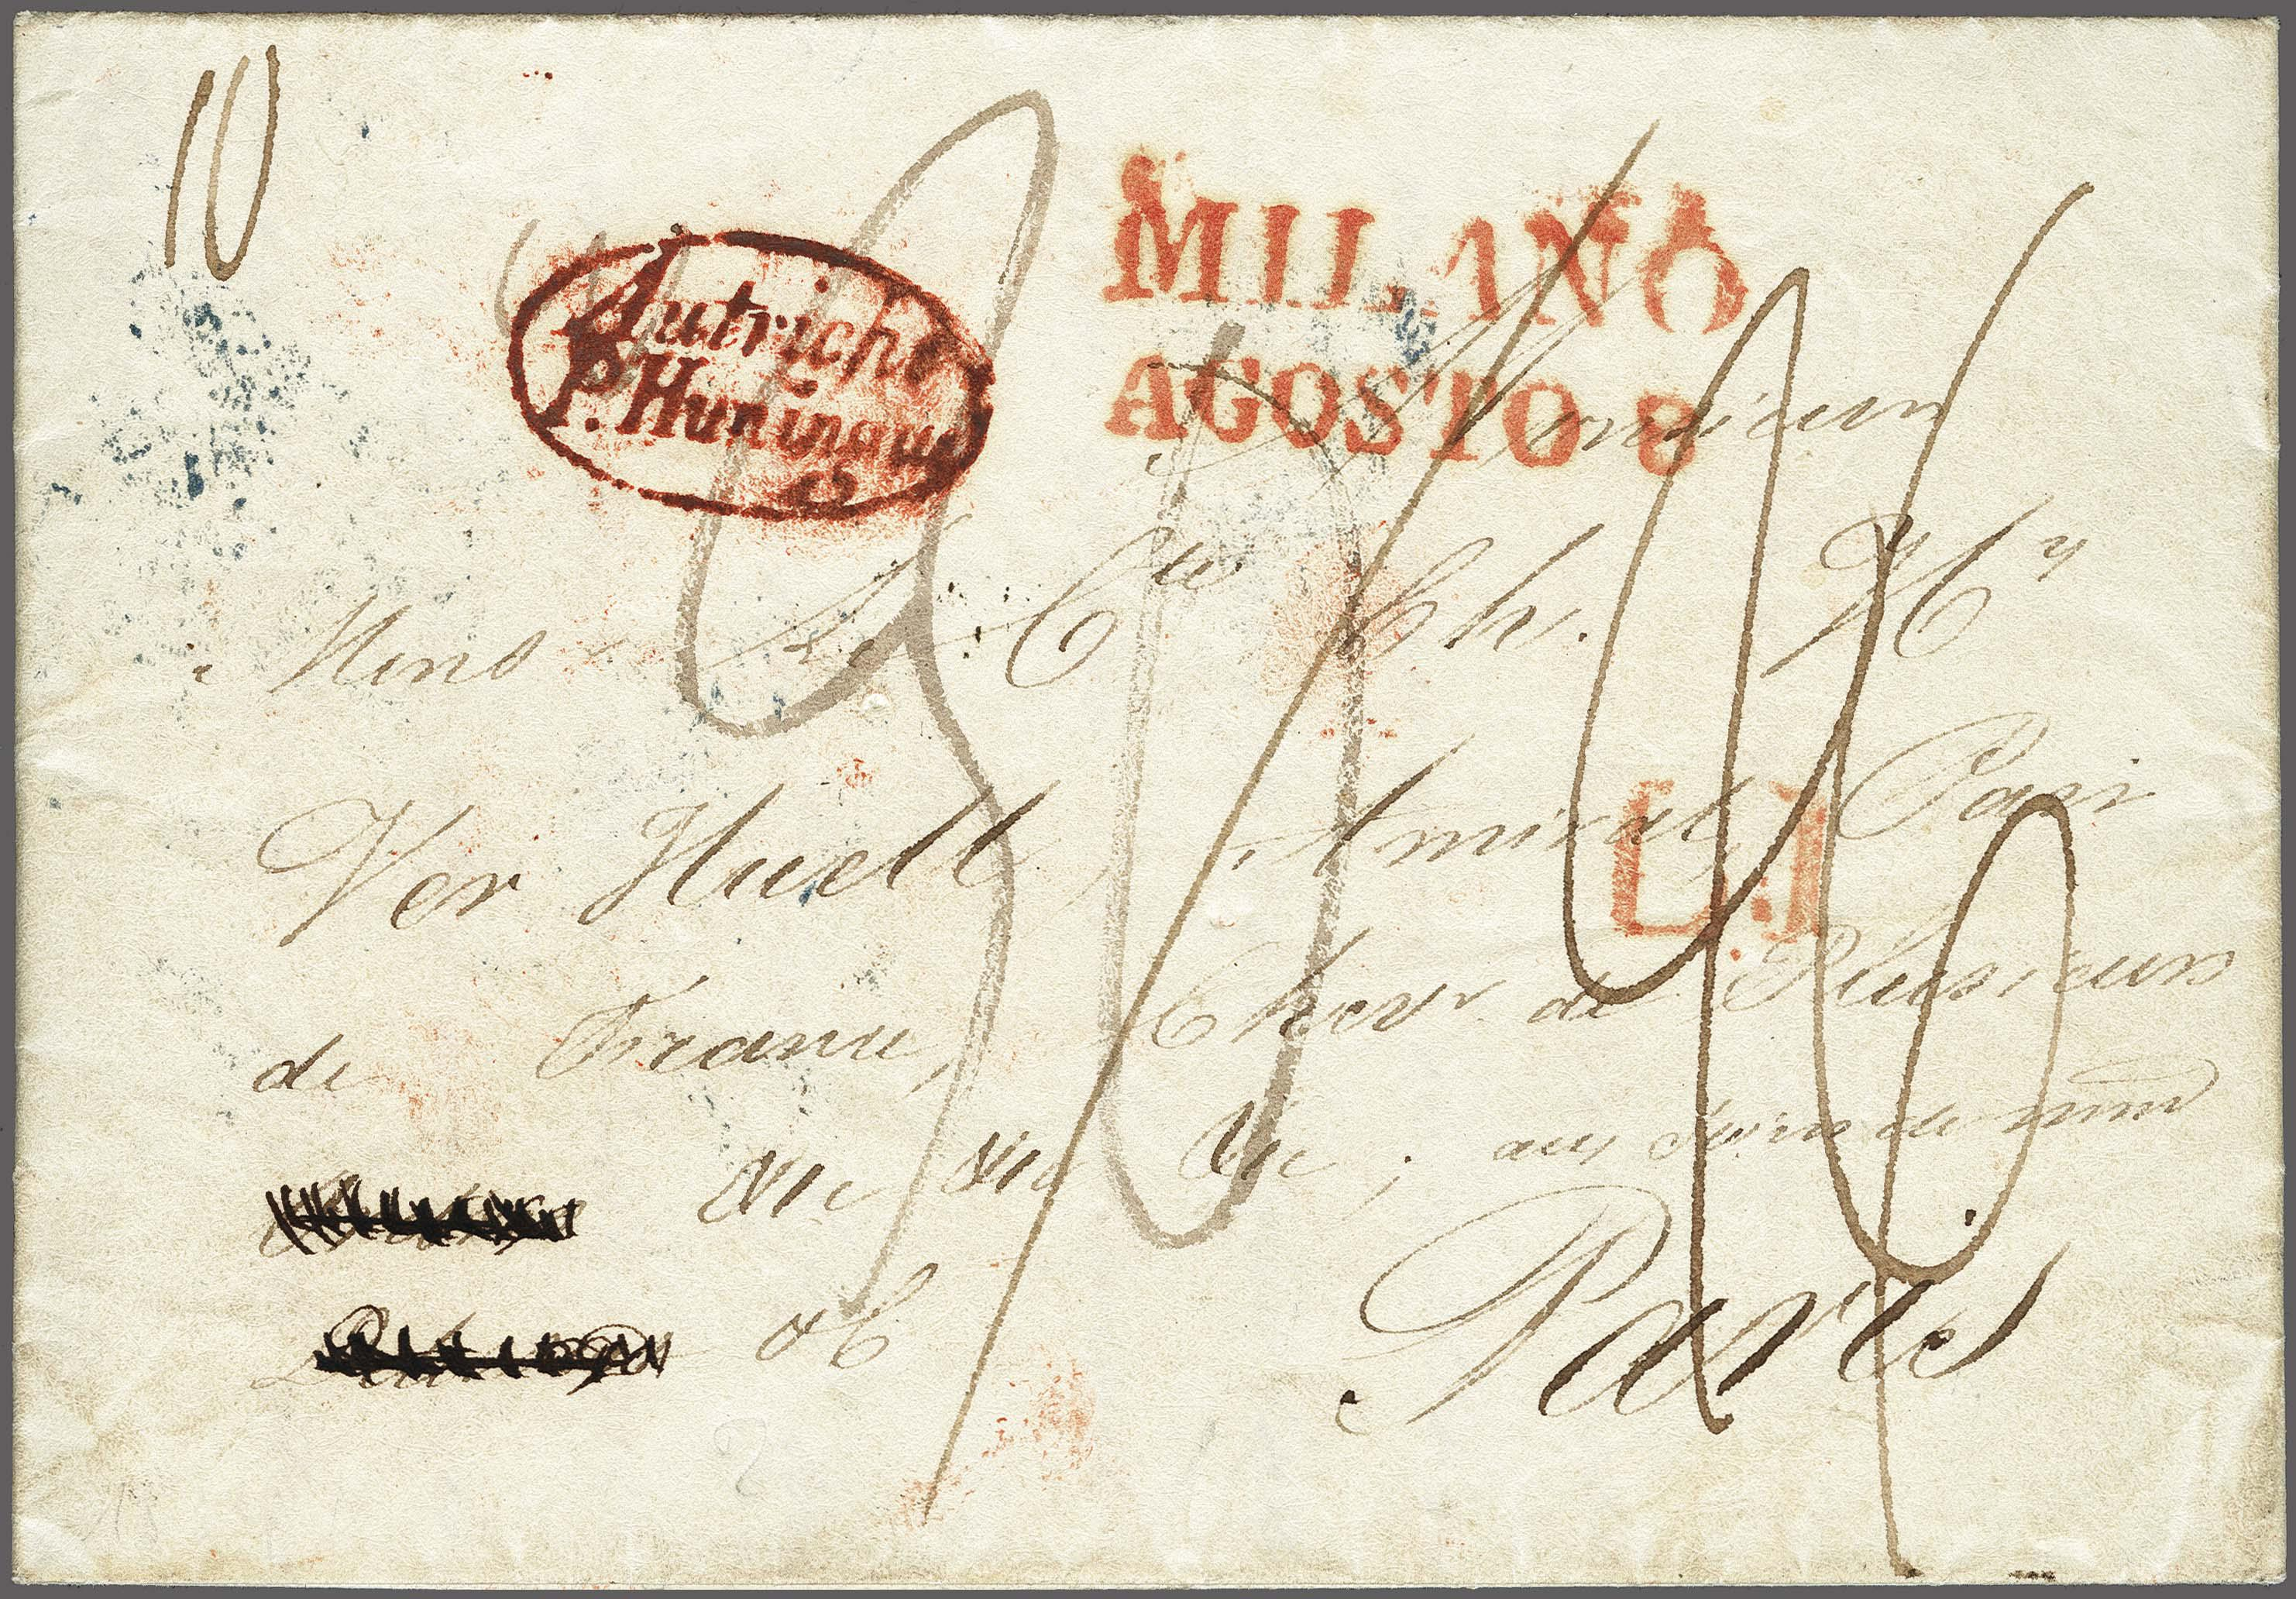 Lot 2396 - Netherlands and former colonies Netherlands -  Corinphila Veilingen Auction 250-253 - Day 3 - Netherlands and former colonies - Single lots & Picture postcards